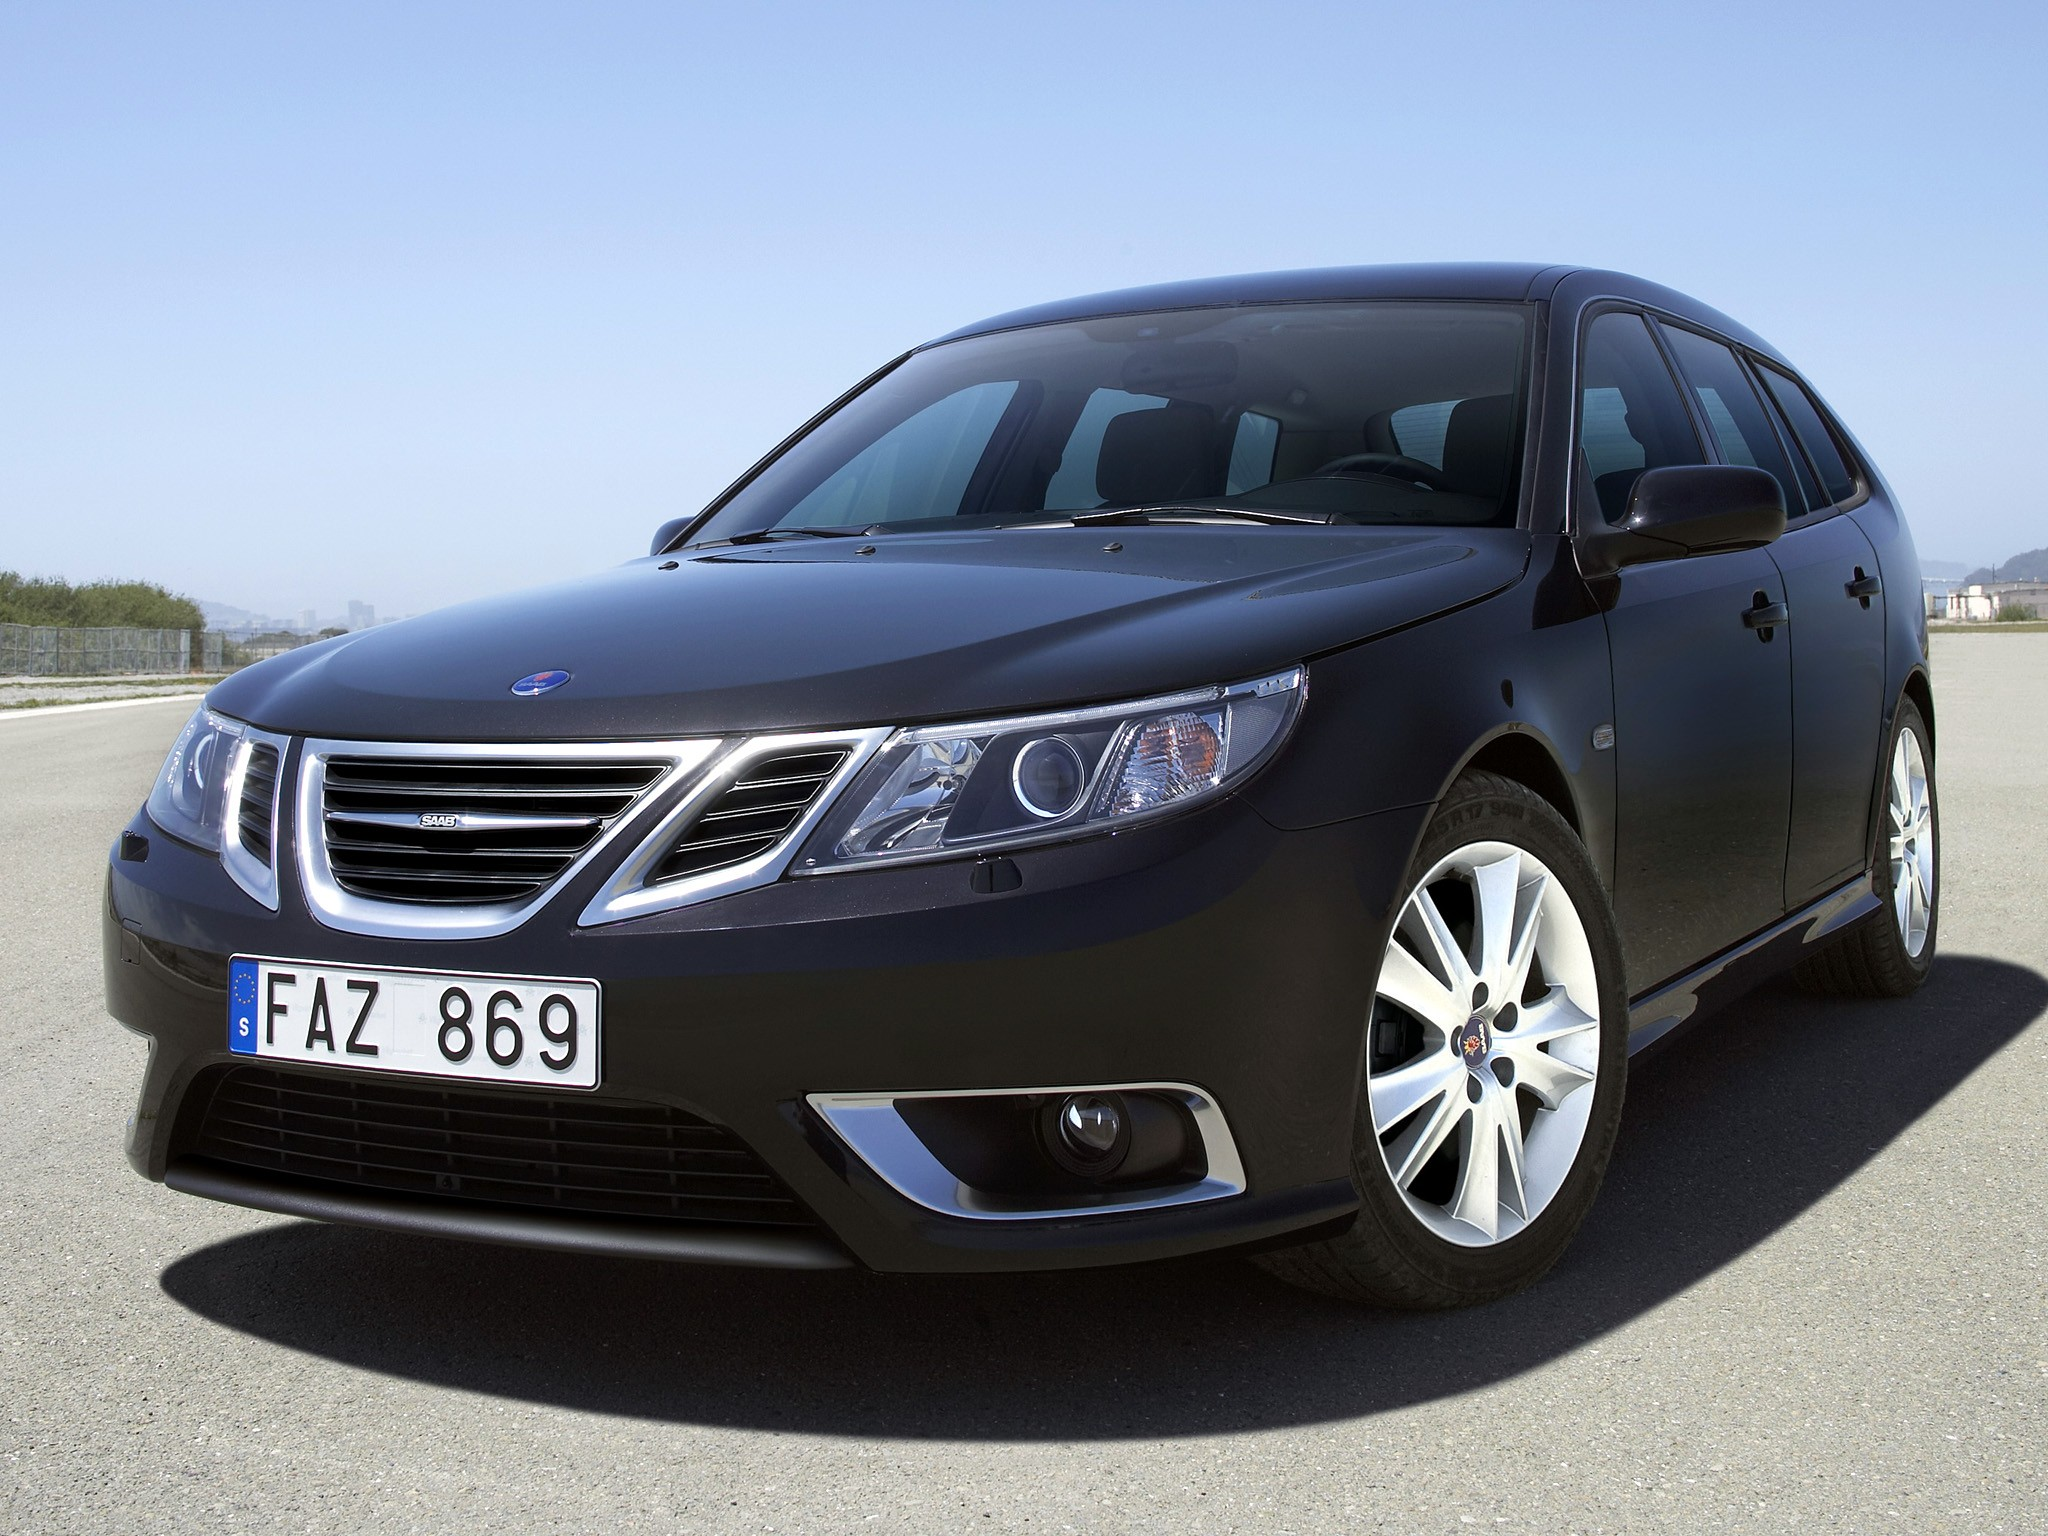 saab 9 3 sportcombi specs 2009 2010 2011 2012 autoevolution. Black Bedroom Furniture Sets. Home Design Ideas